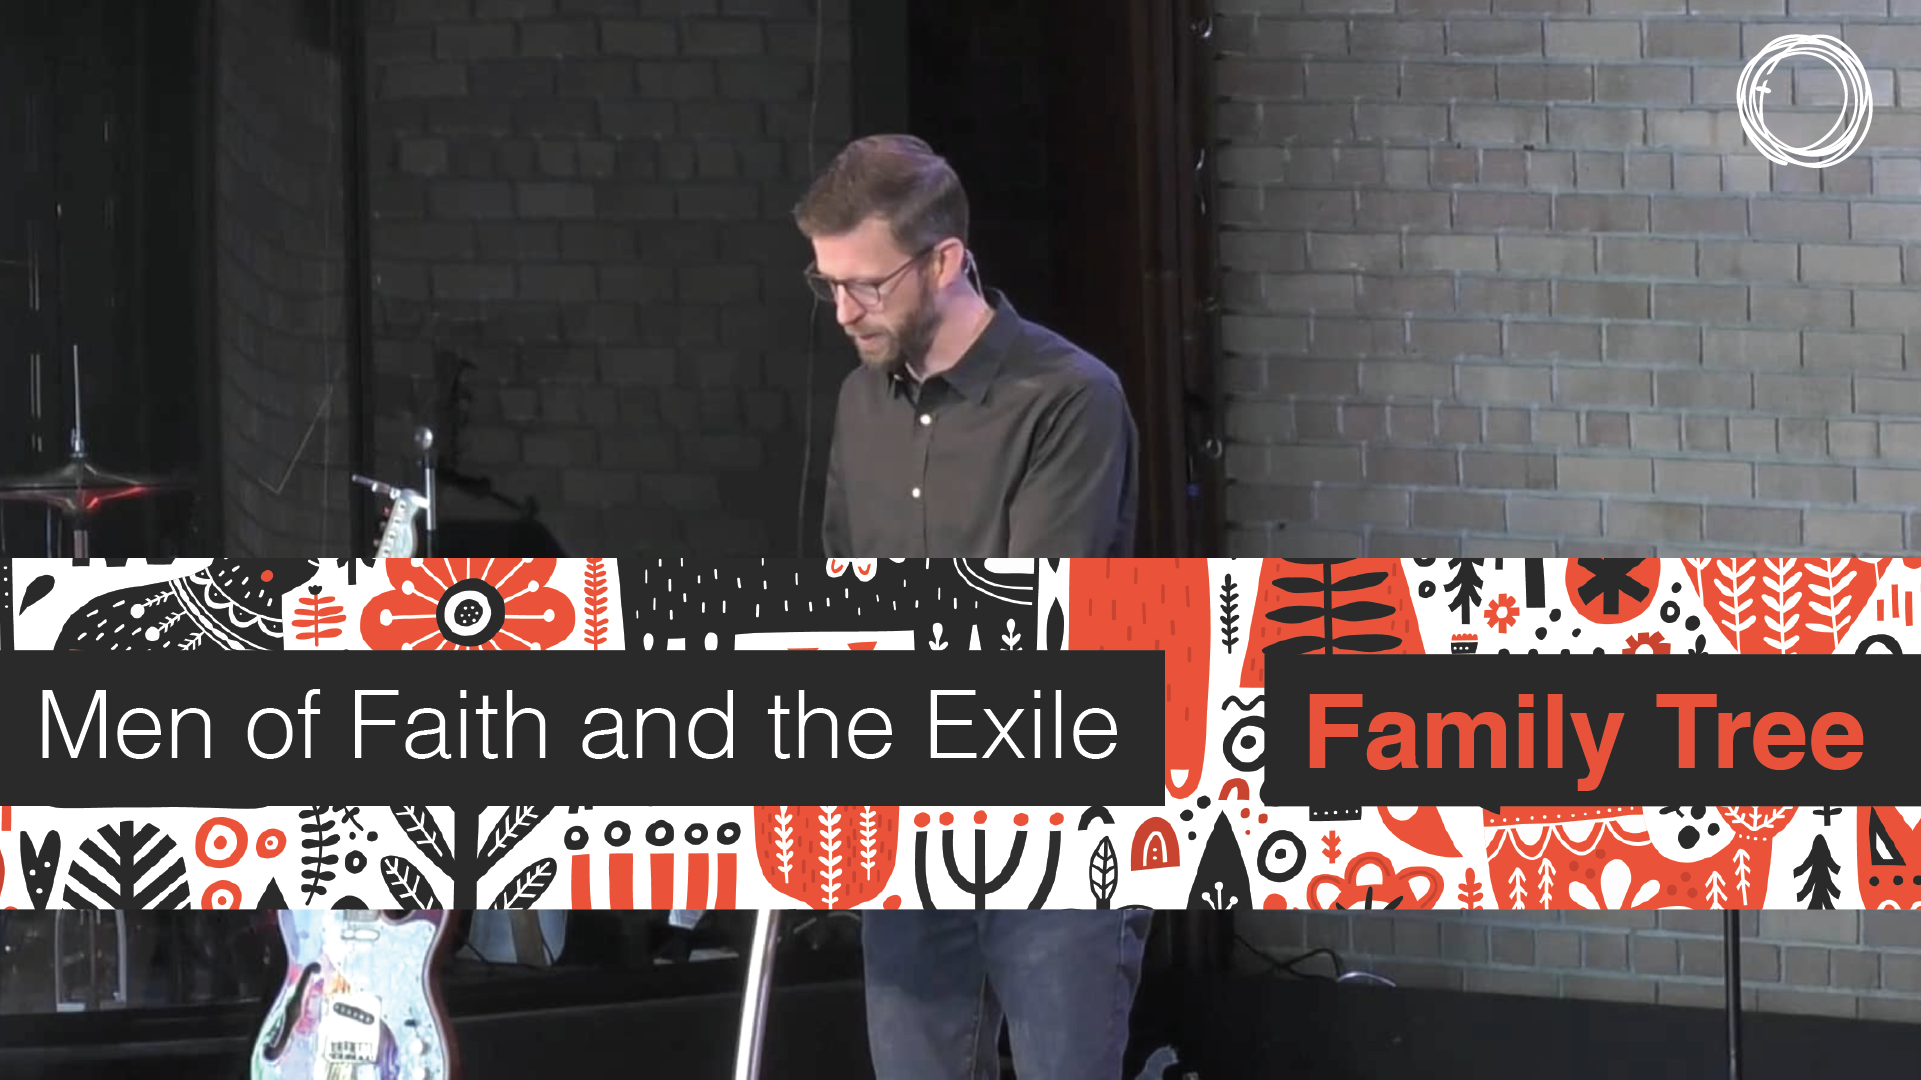 Men of Faith and the Exile